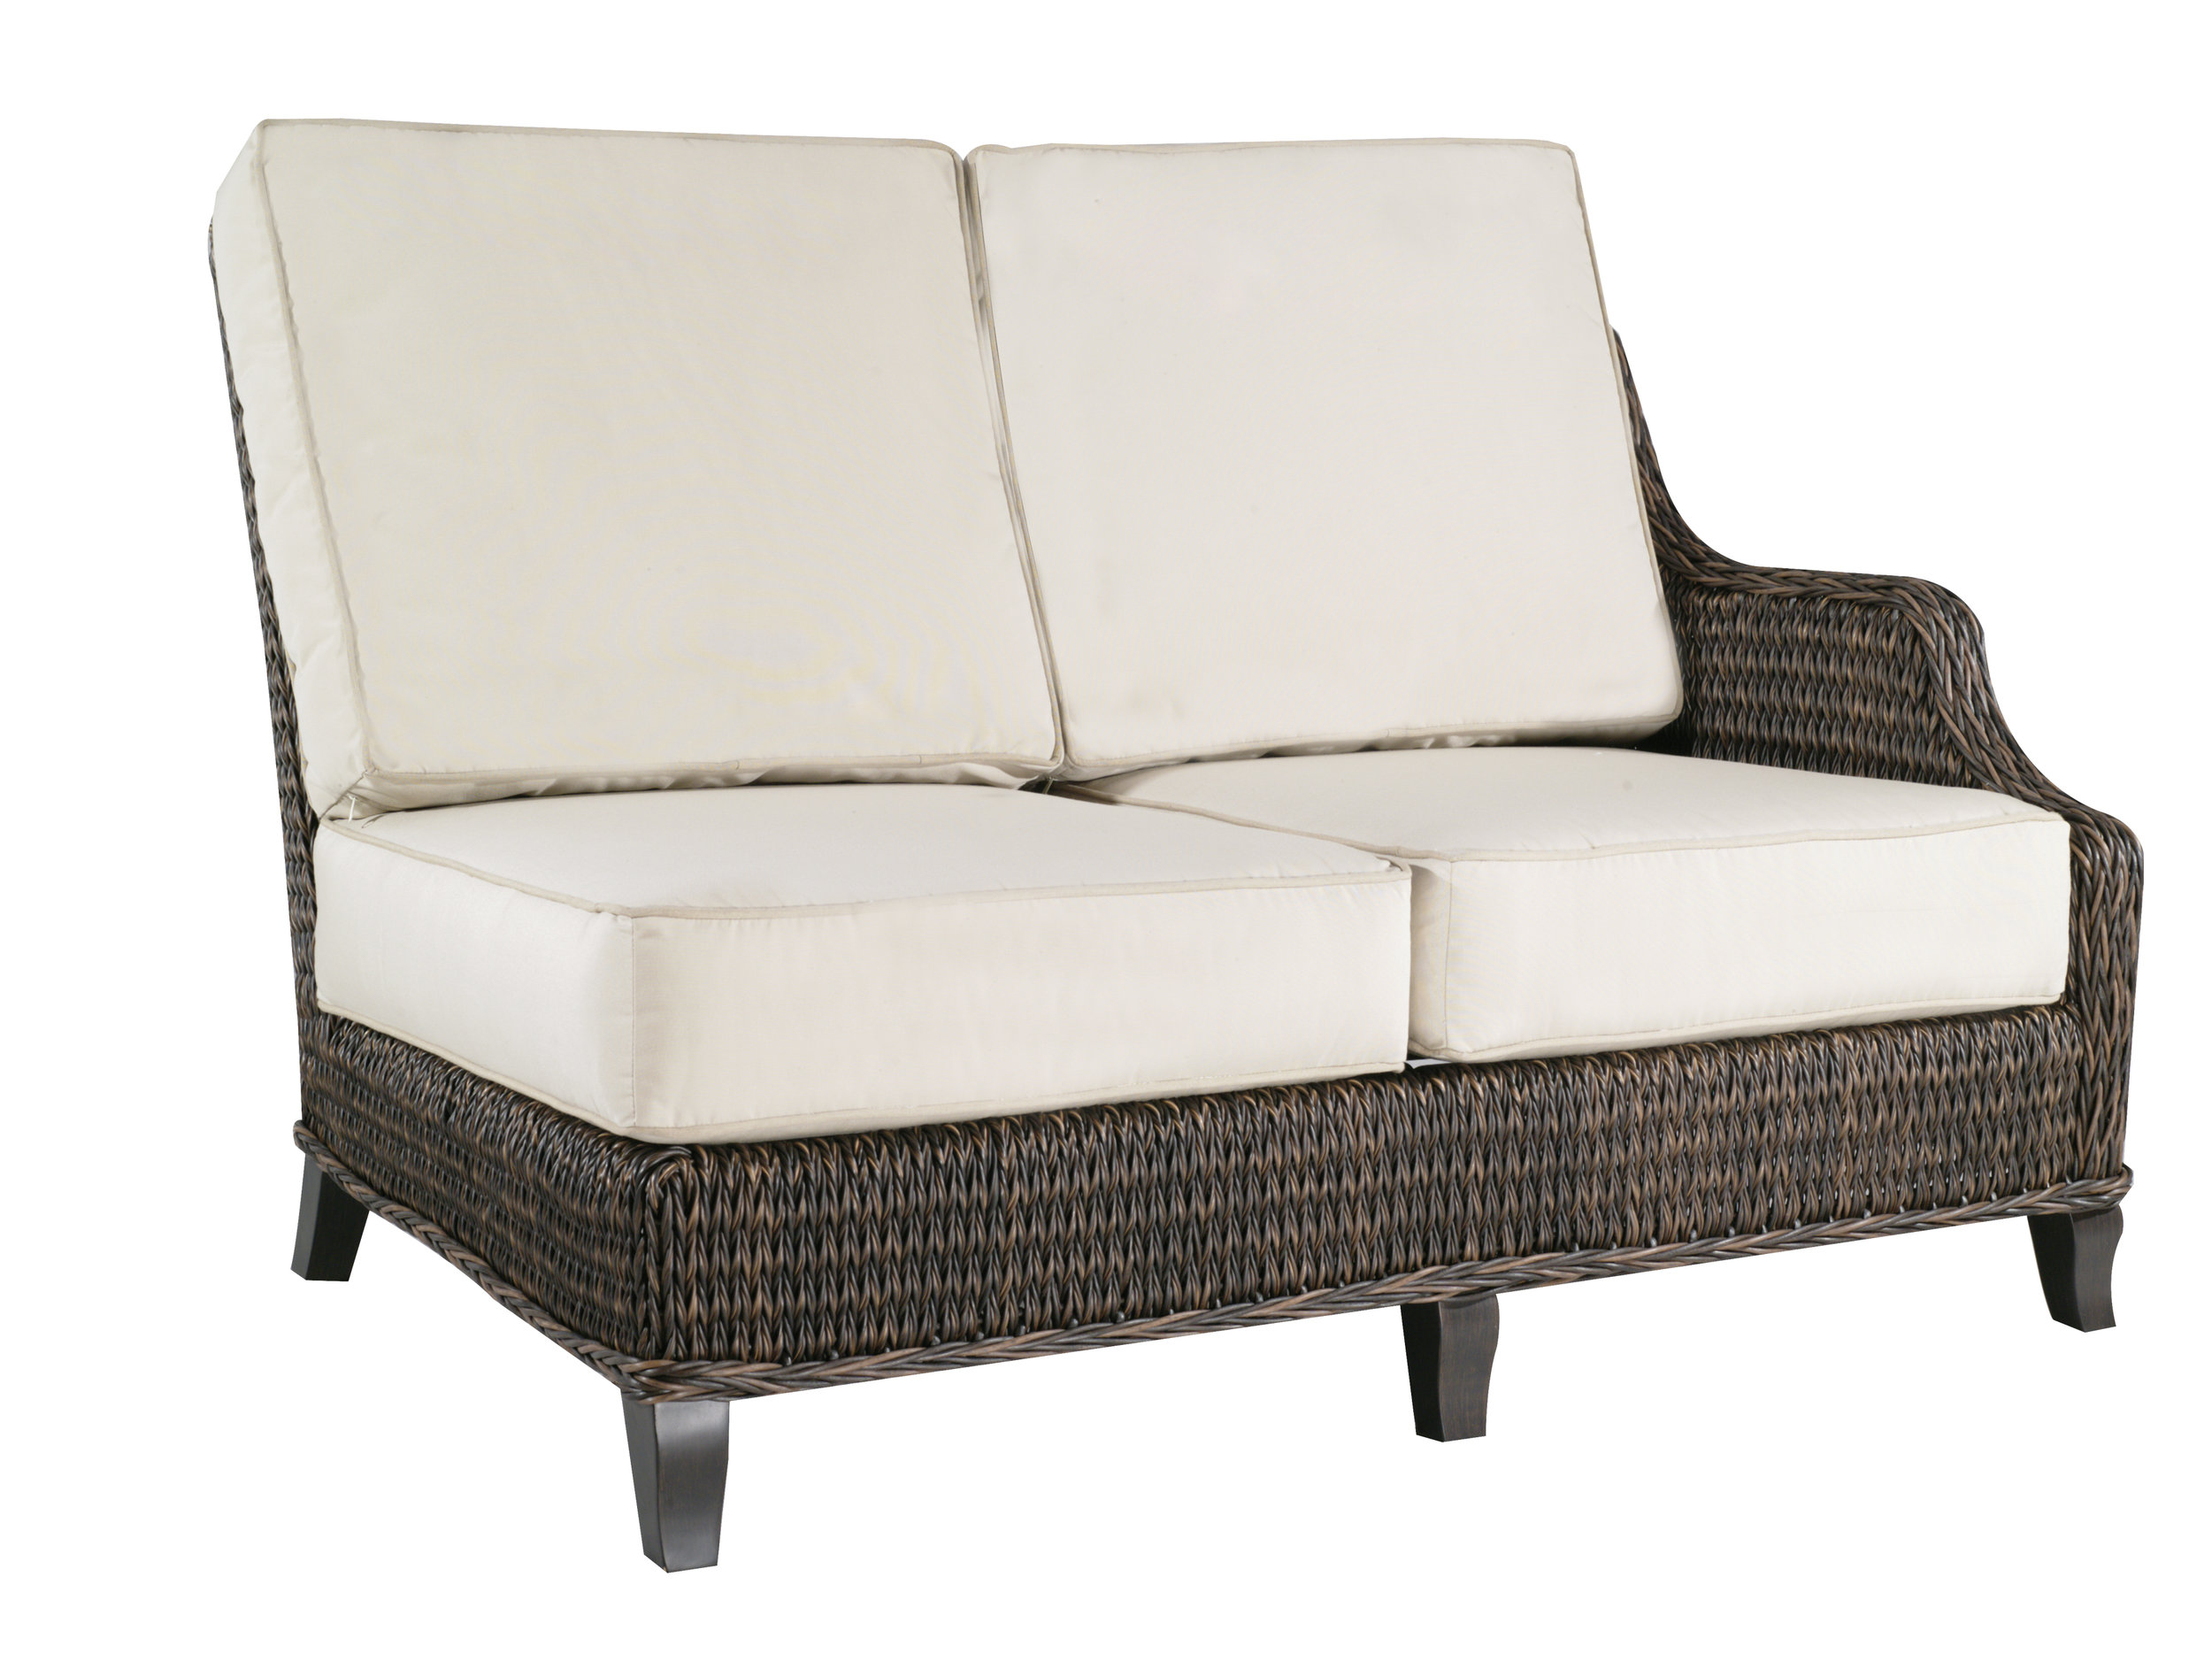 "973061R Monticello Right Loveseat   54"" x 40.2"" x 36.2"""